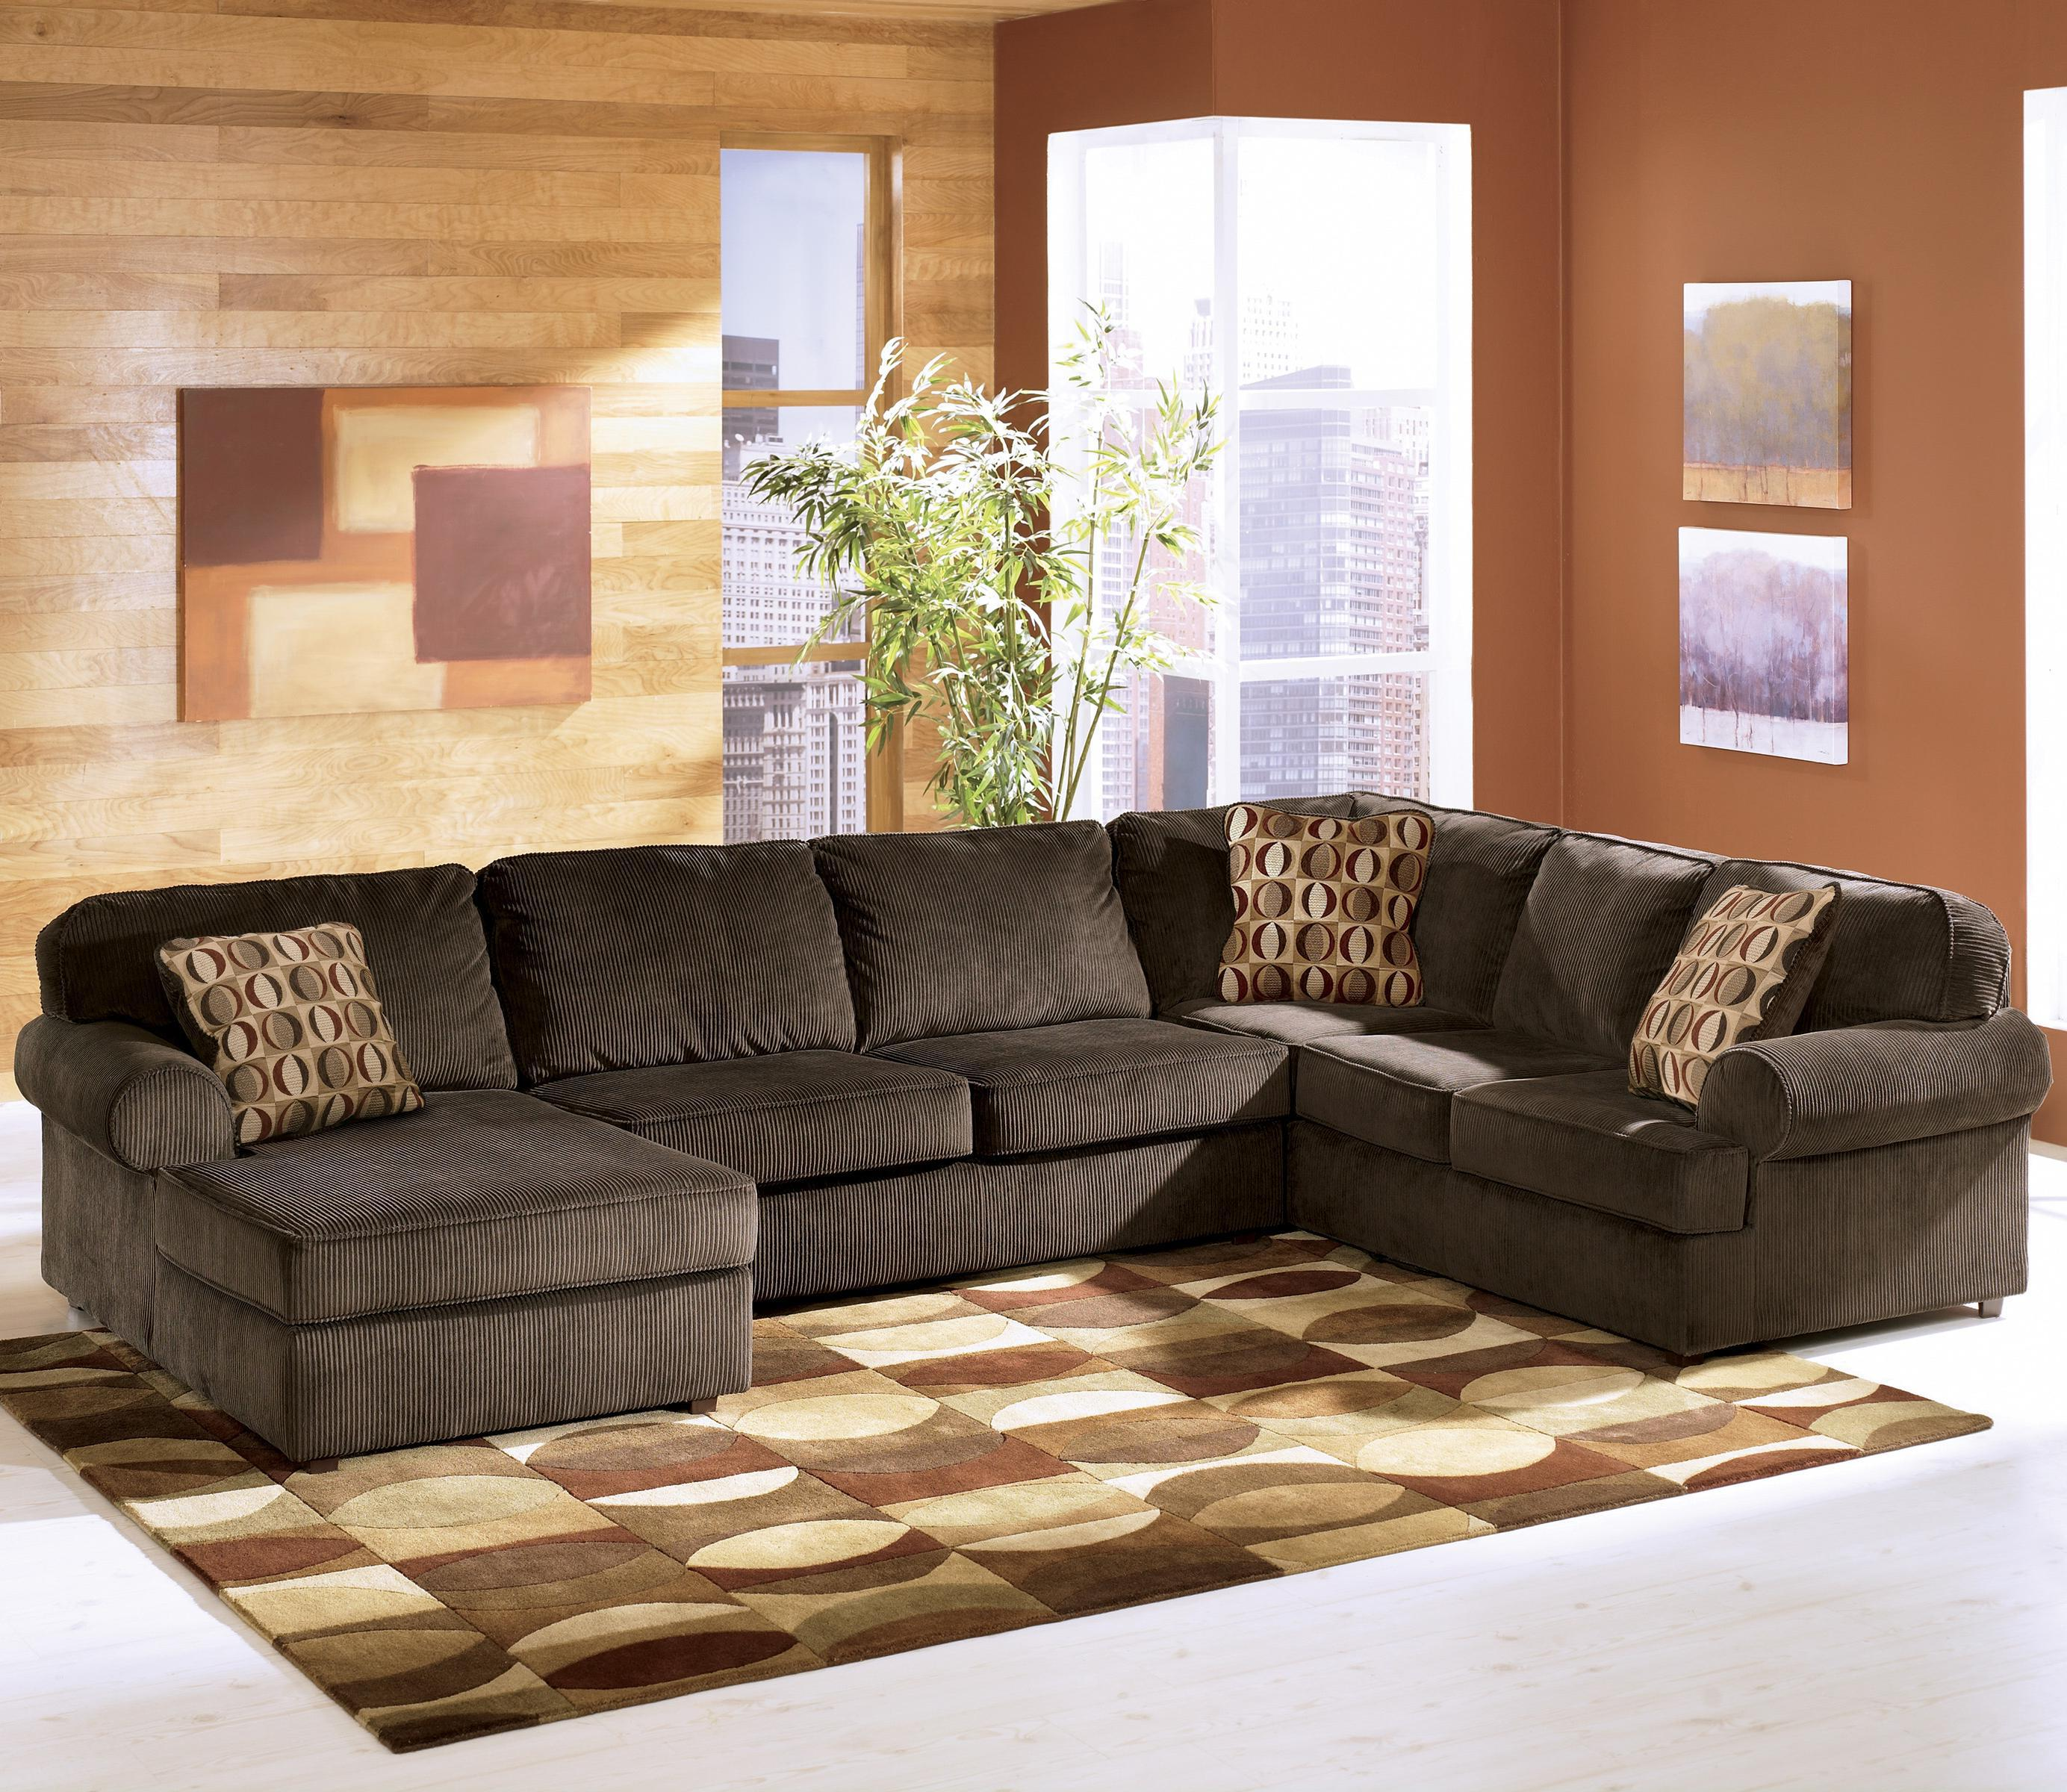 Magnificent Ashley Furniture Louisville for Home Furniture Ideas: Ashley Furniture Layaway | Ashley Furniture El Paso | Ashley Furniture Louisville